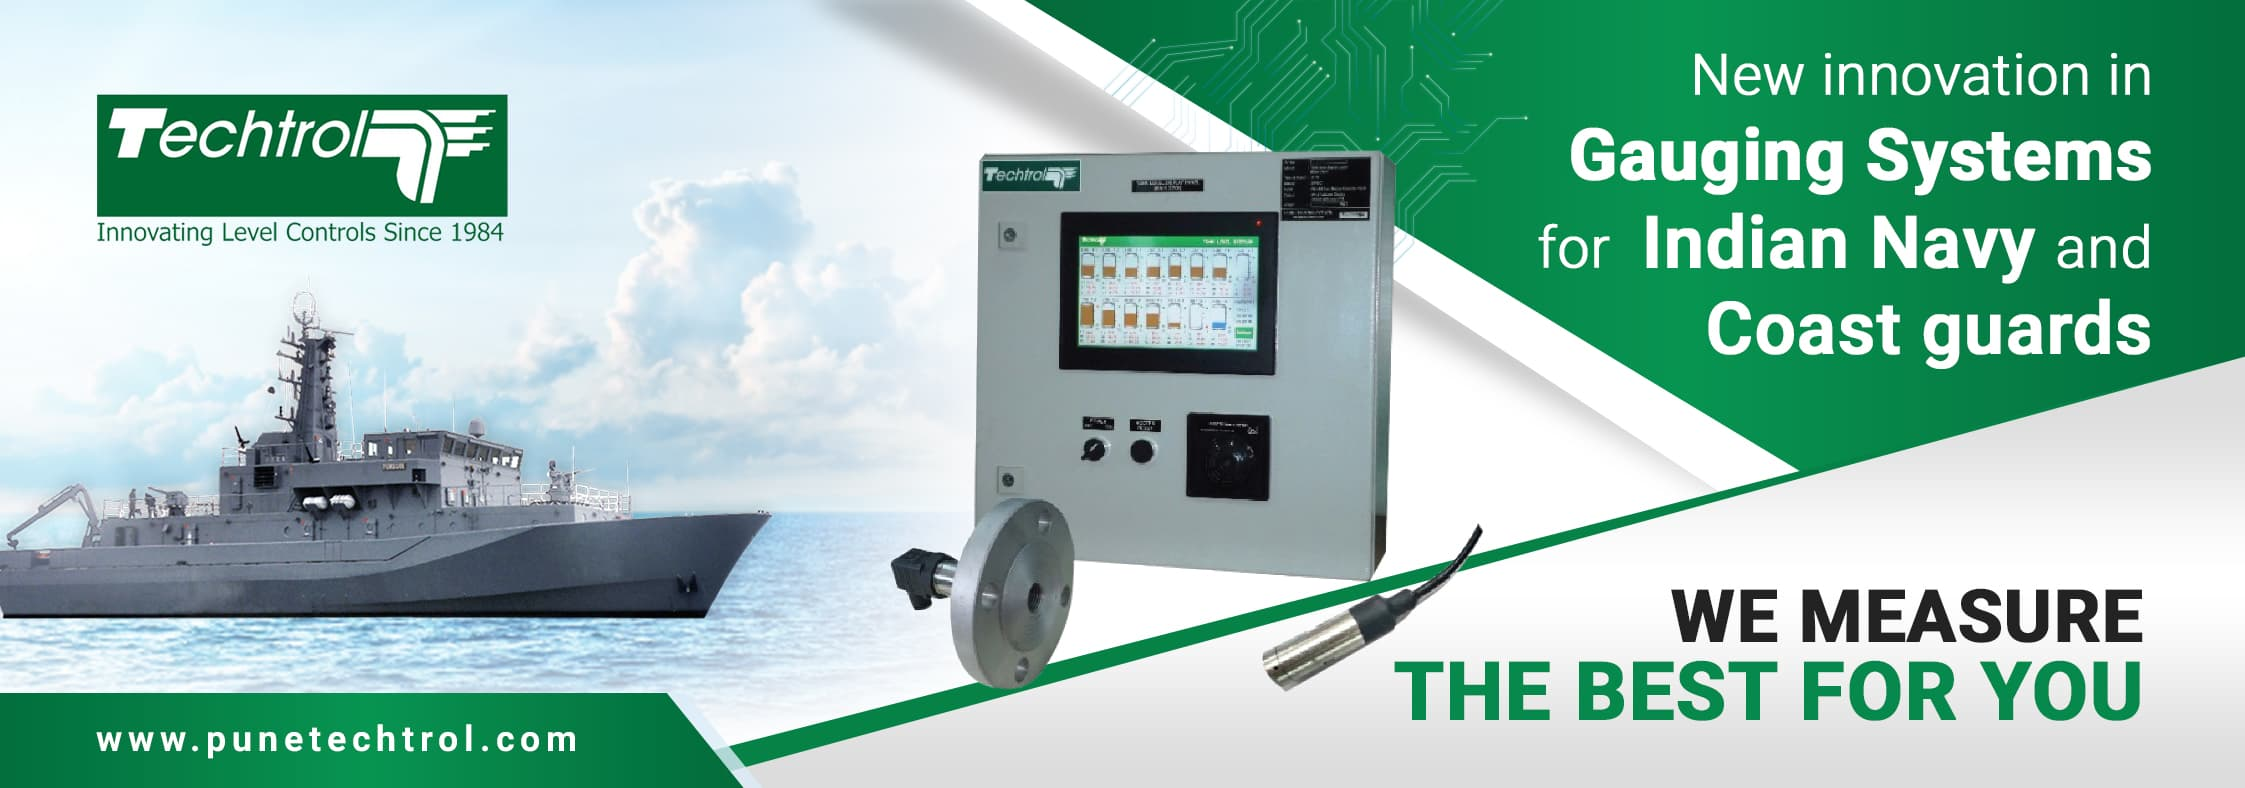 Techtrol Gauging System for Indian Navy & Coast Guards